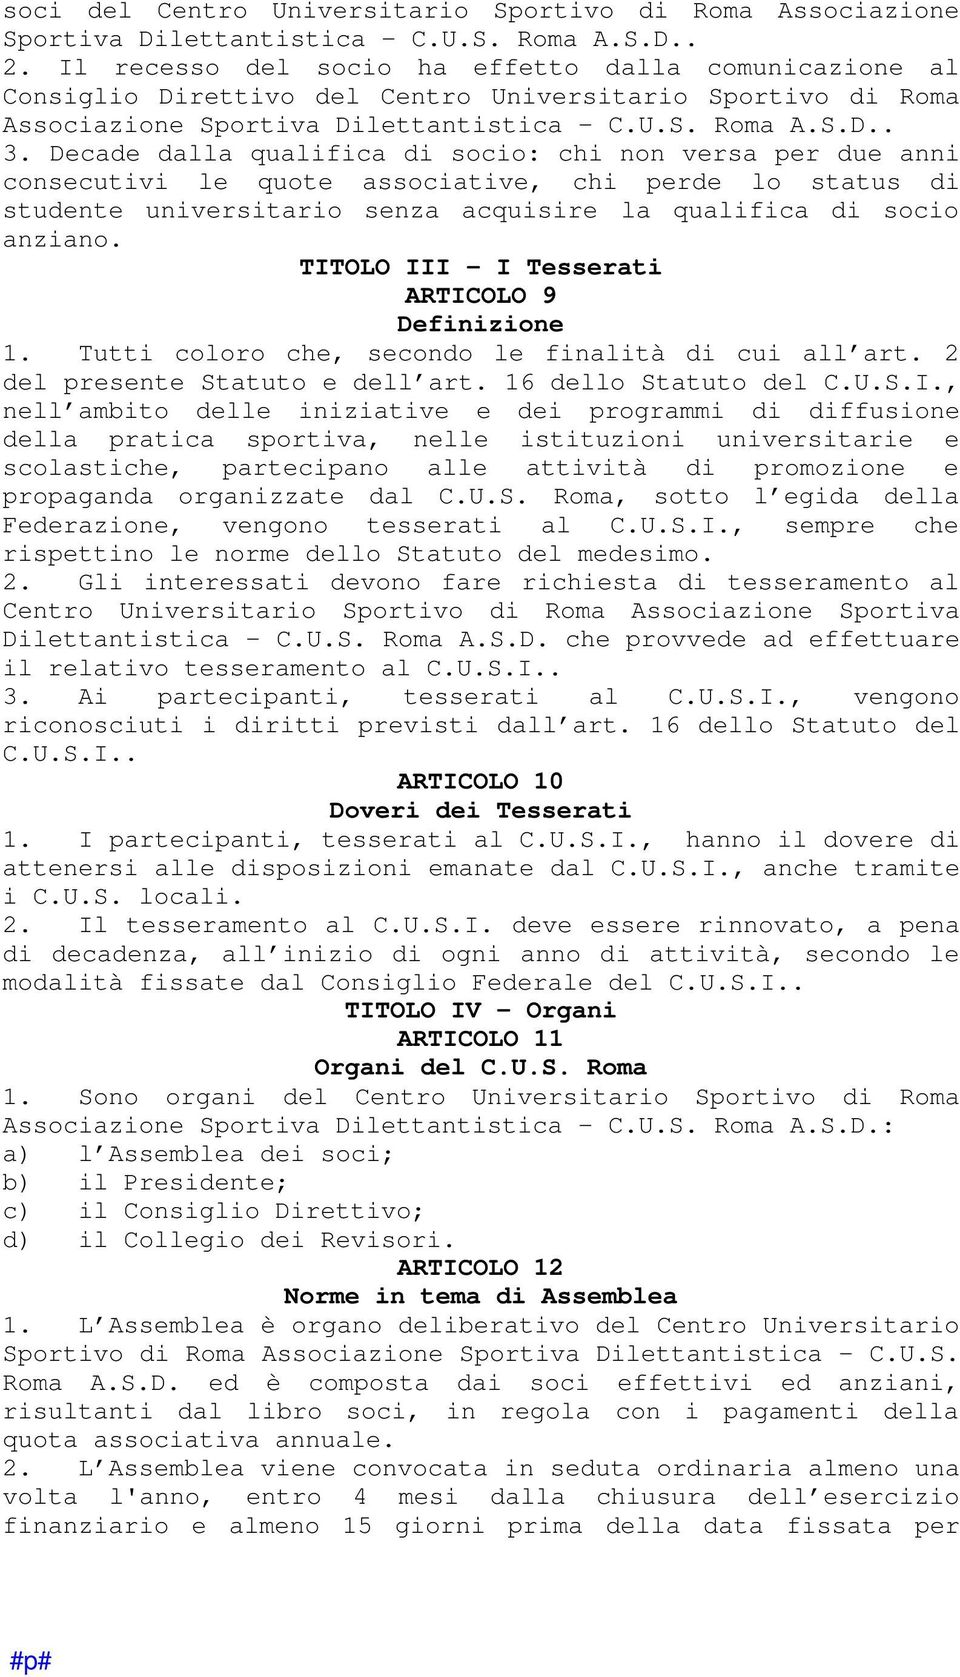 Decade dalla qualifica di socio: chi non versa per due anni consecutivi le quote associative, chi perde lo status di studente universitario senza acquisire la qualifica di socio anziano.